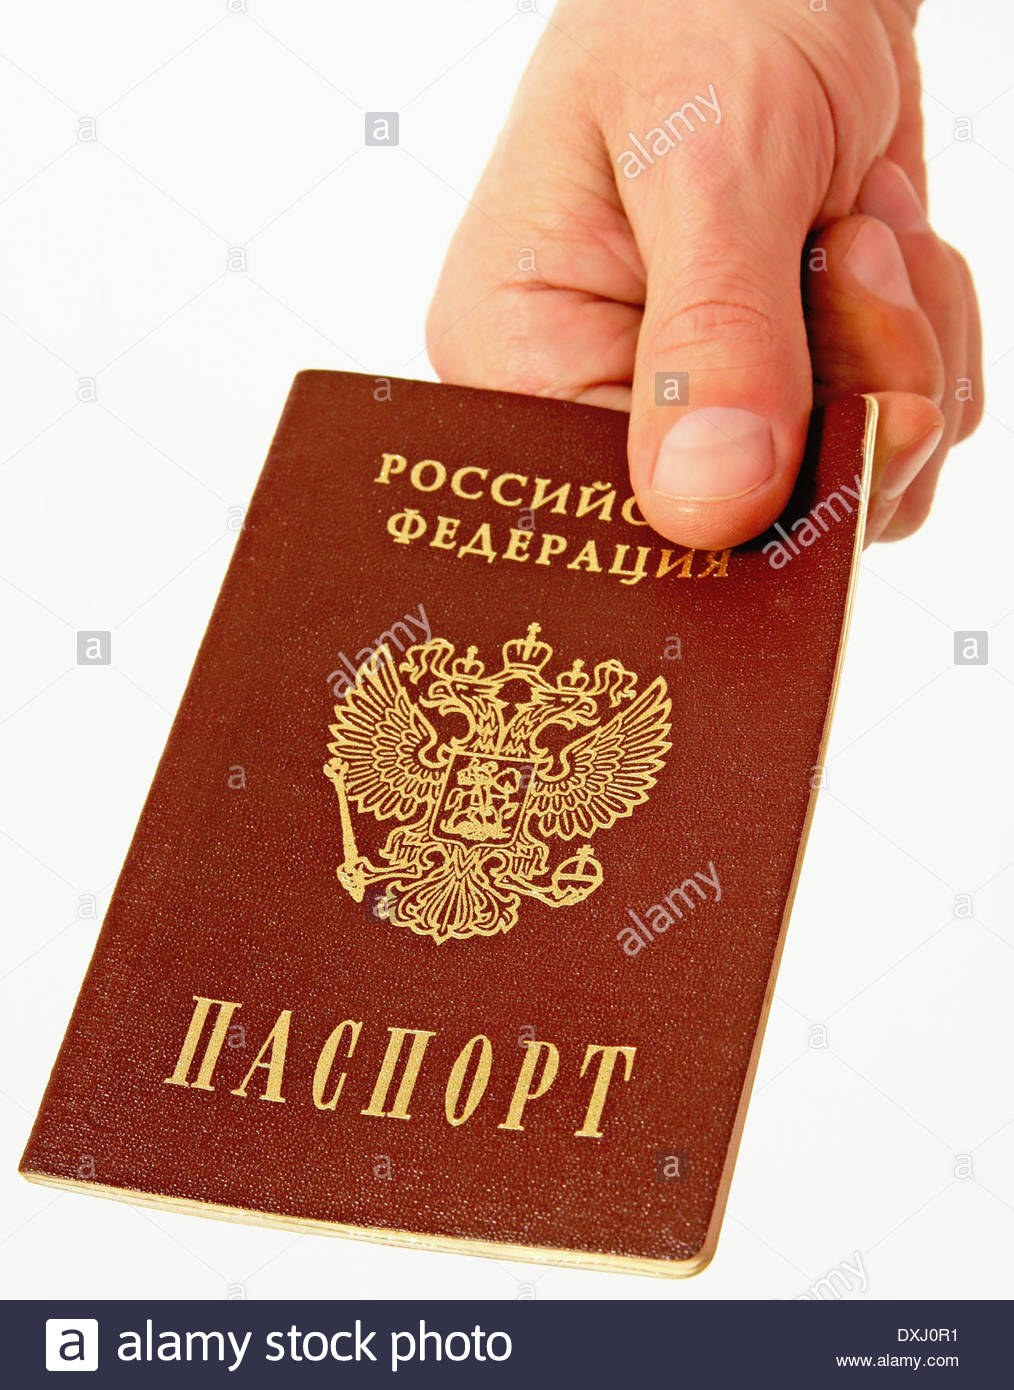 Acquisition of Russian citizenship and handing Russian passports. - Stock Image